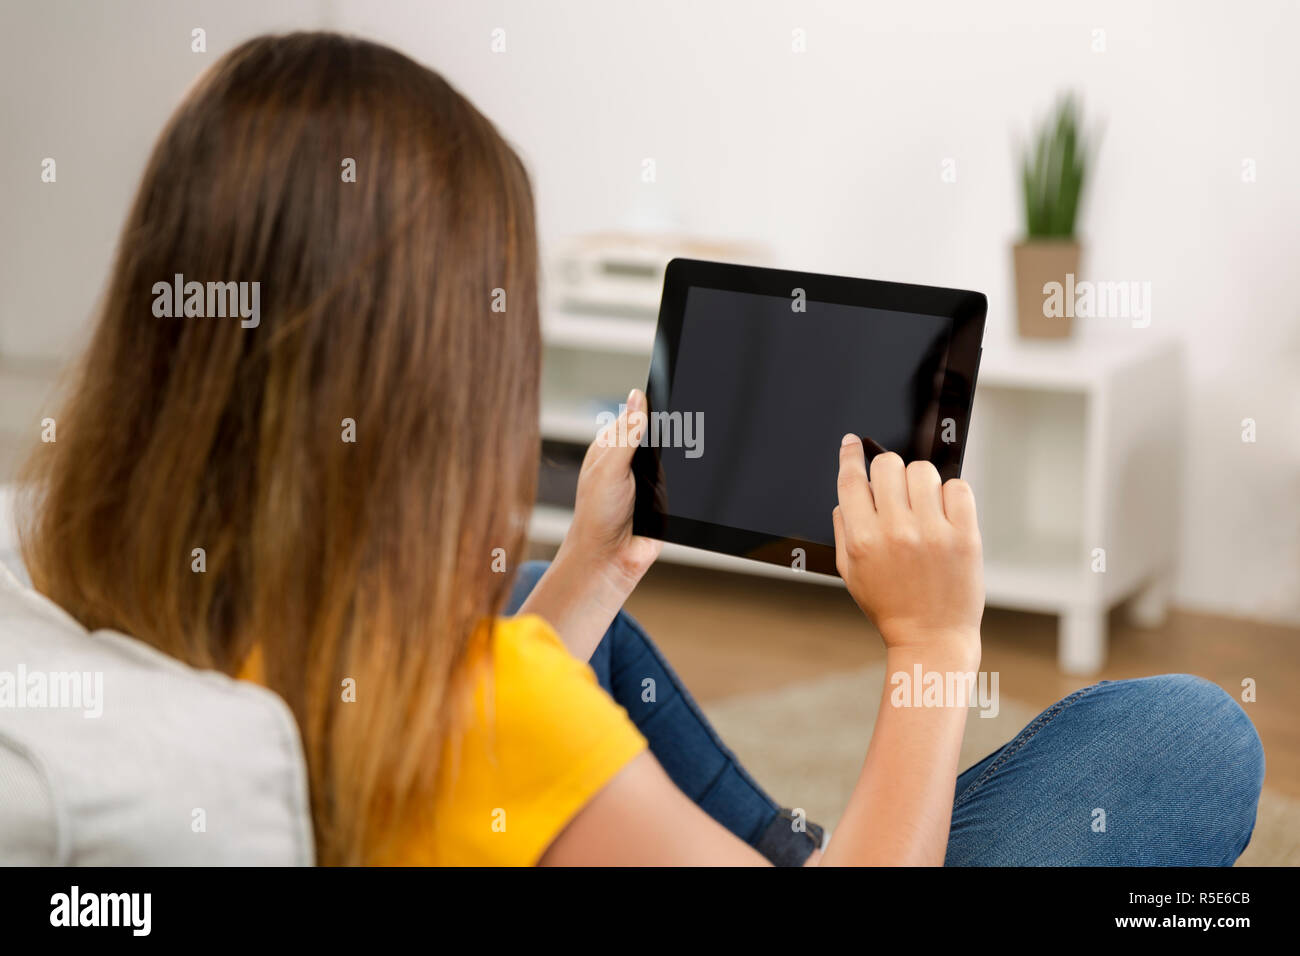 Always connected - Stock Image